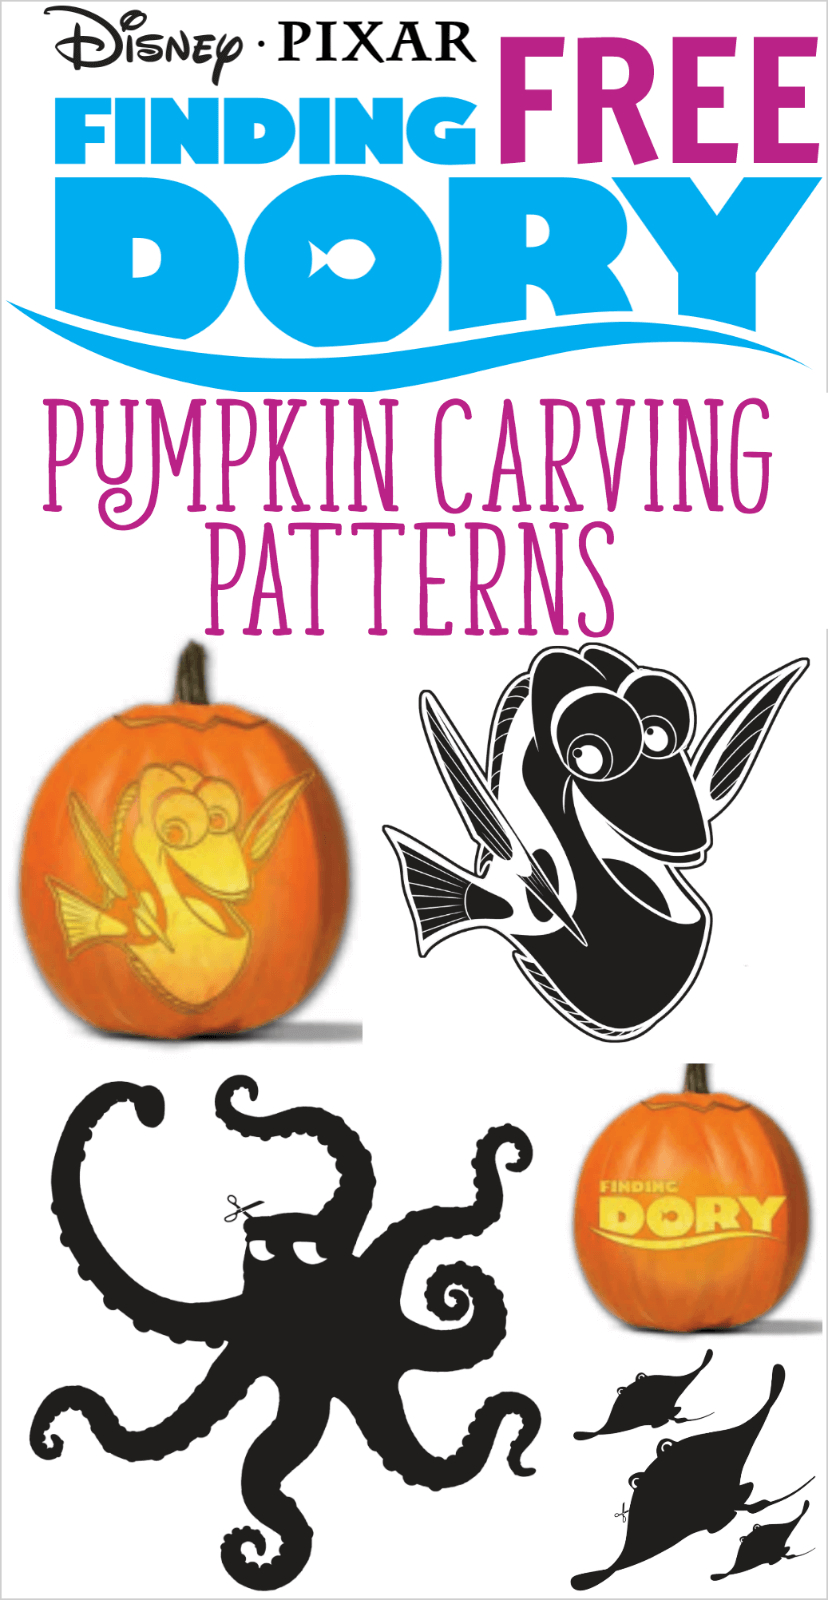 Free Finding Dory Pumpkin Carving Patterns To Print! | All Things - Free Pumpkin Carving Patterns Disney Printable